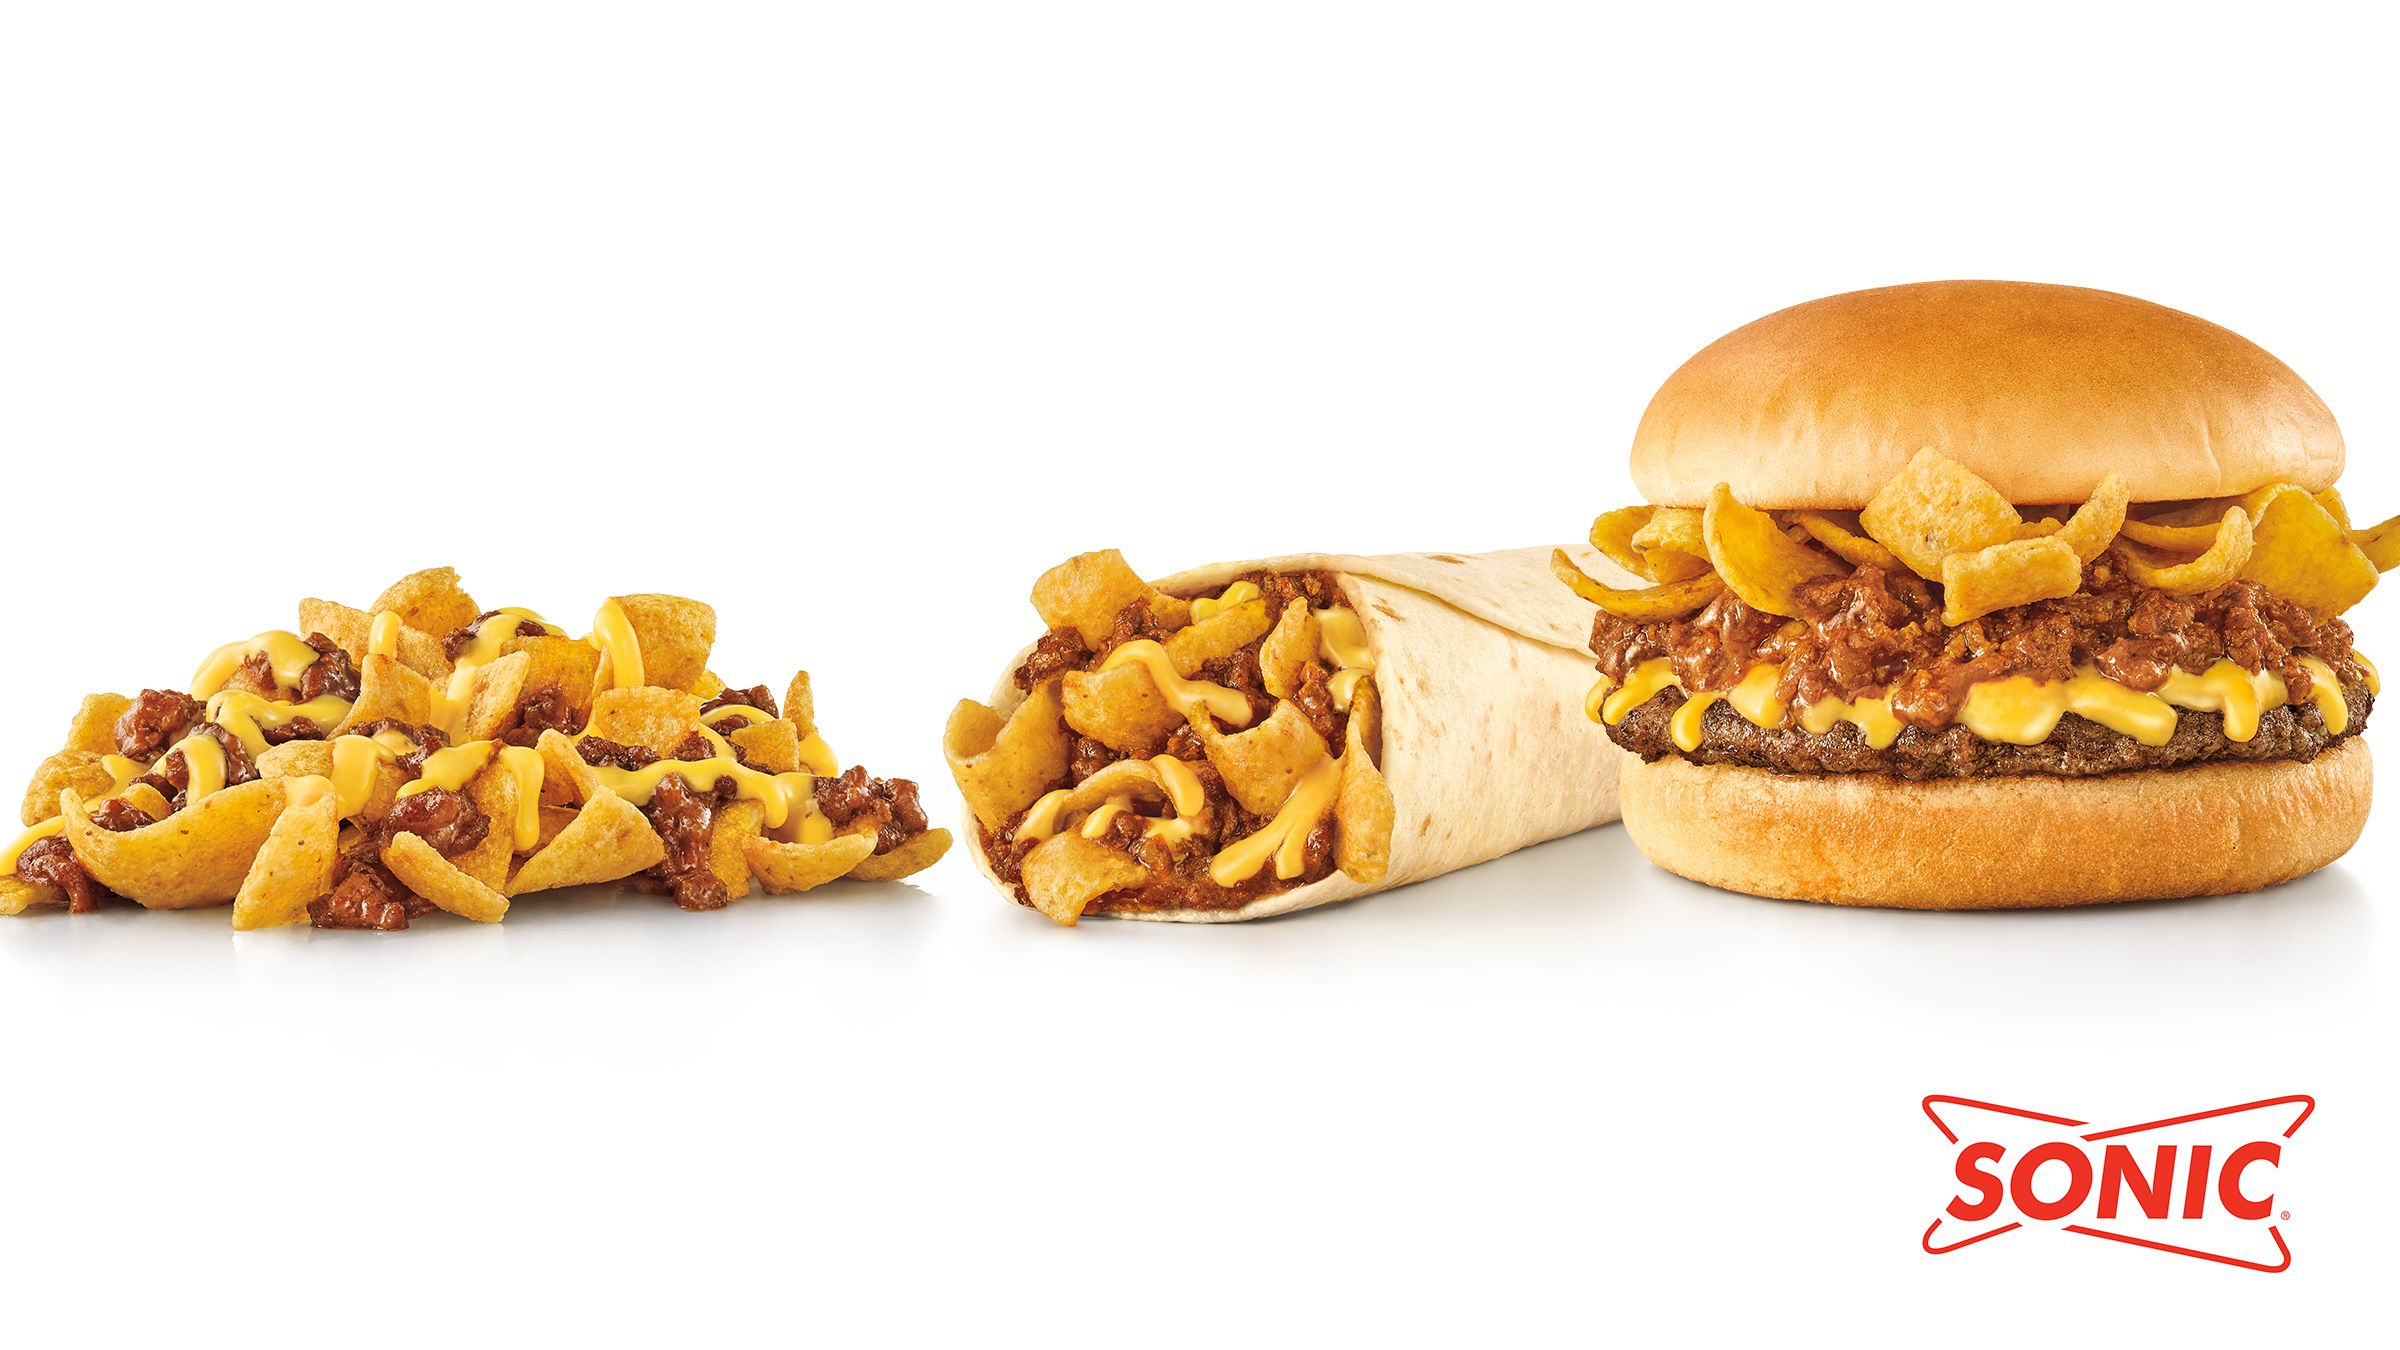 Sonic Added 99 Cent Fritos Chili Cheese Items To Its Menu